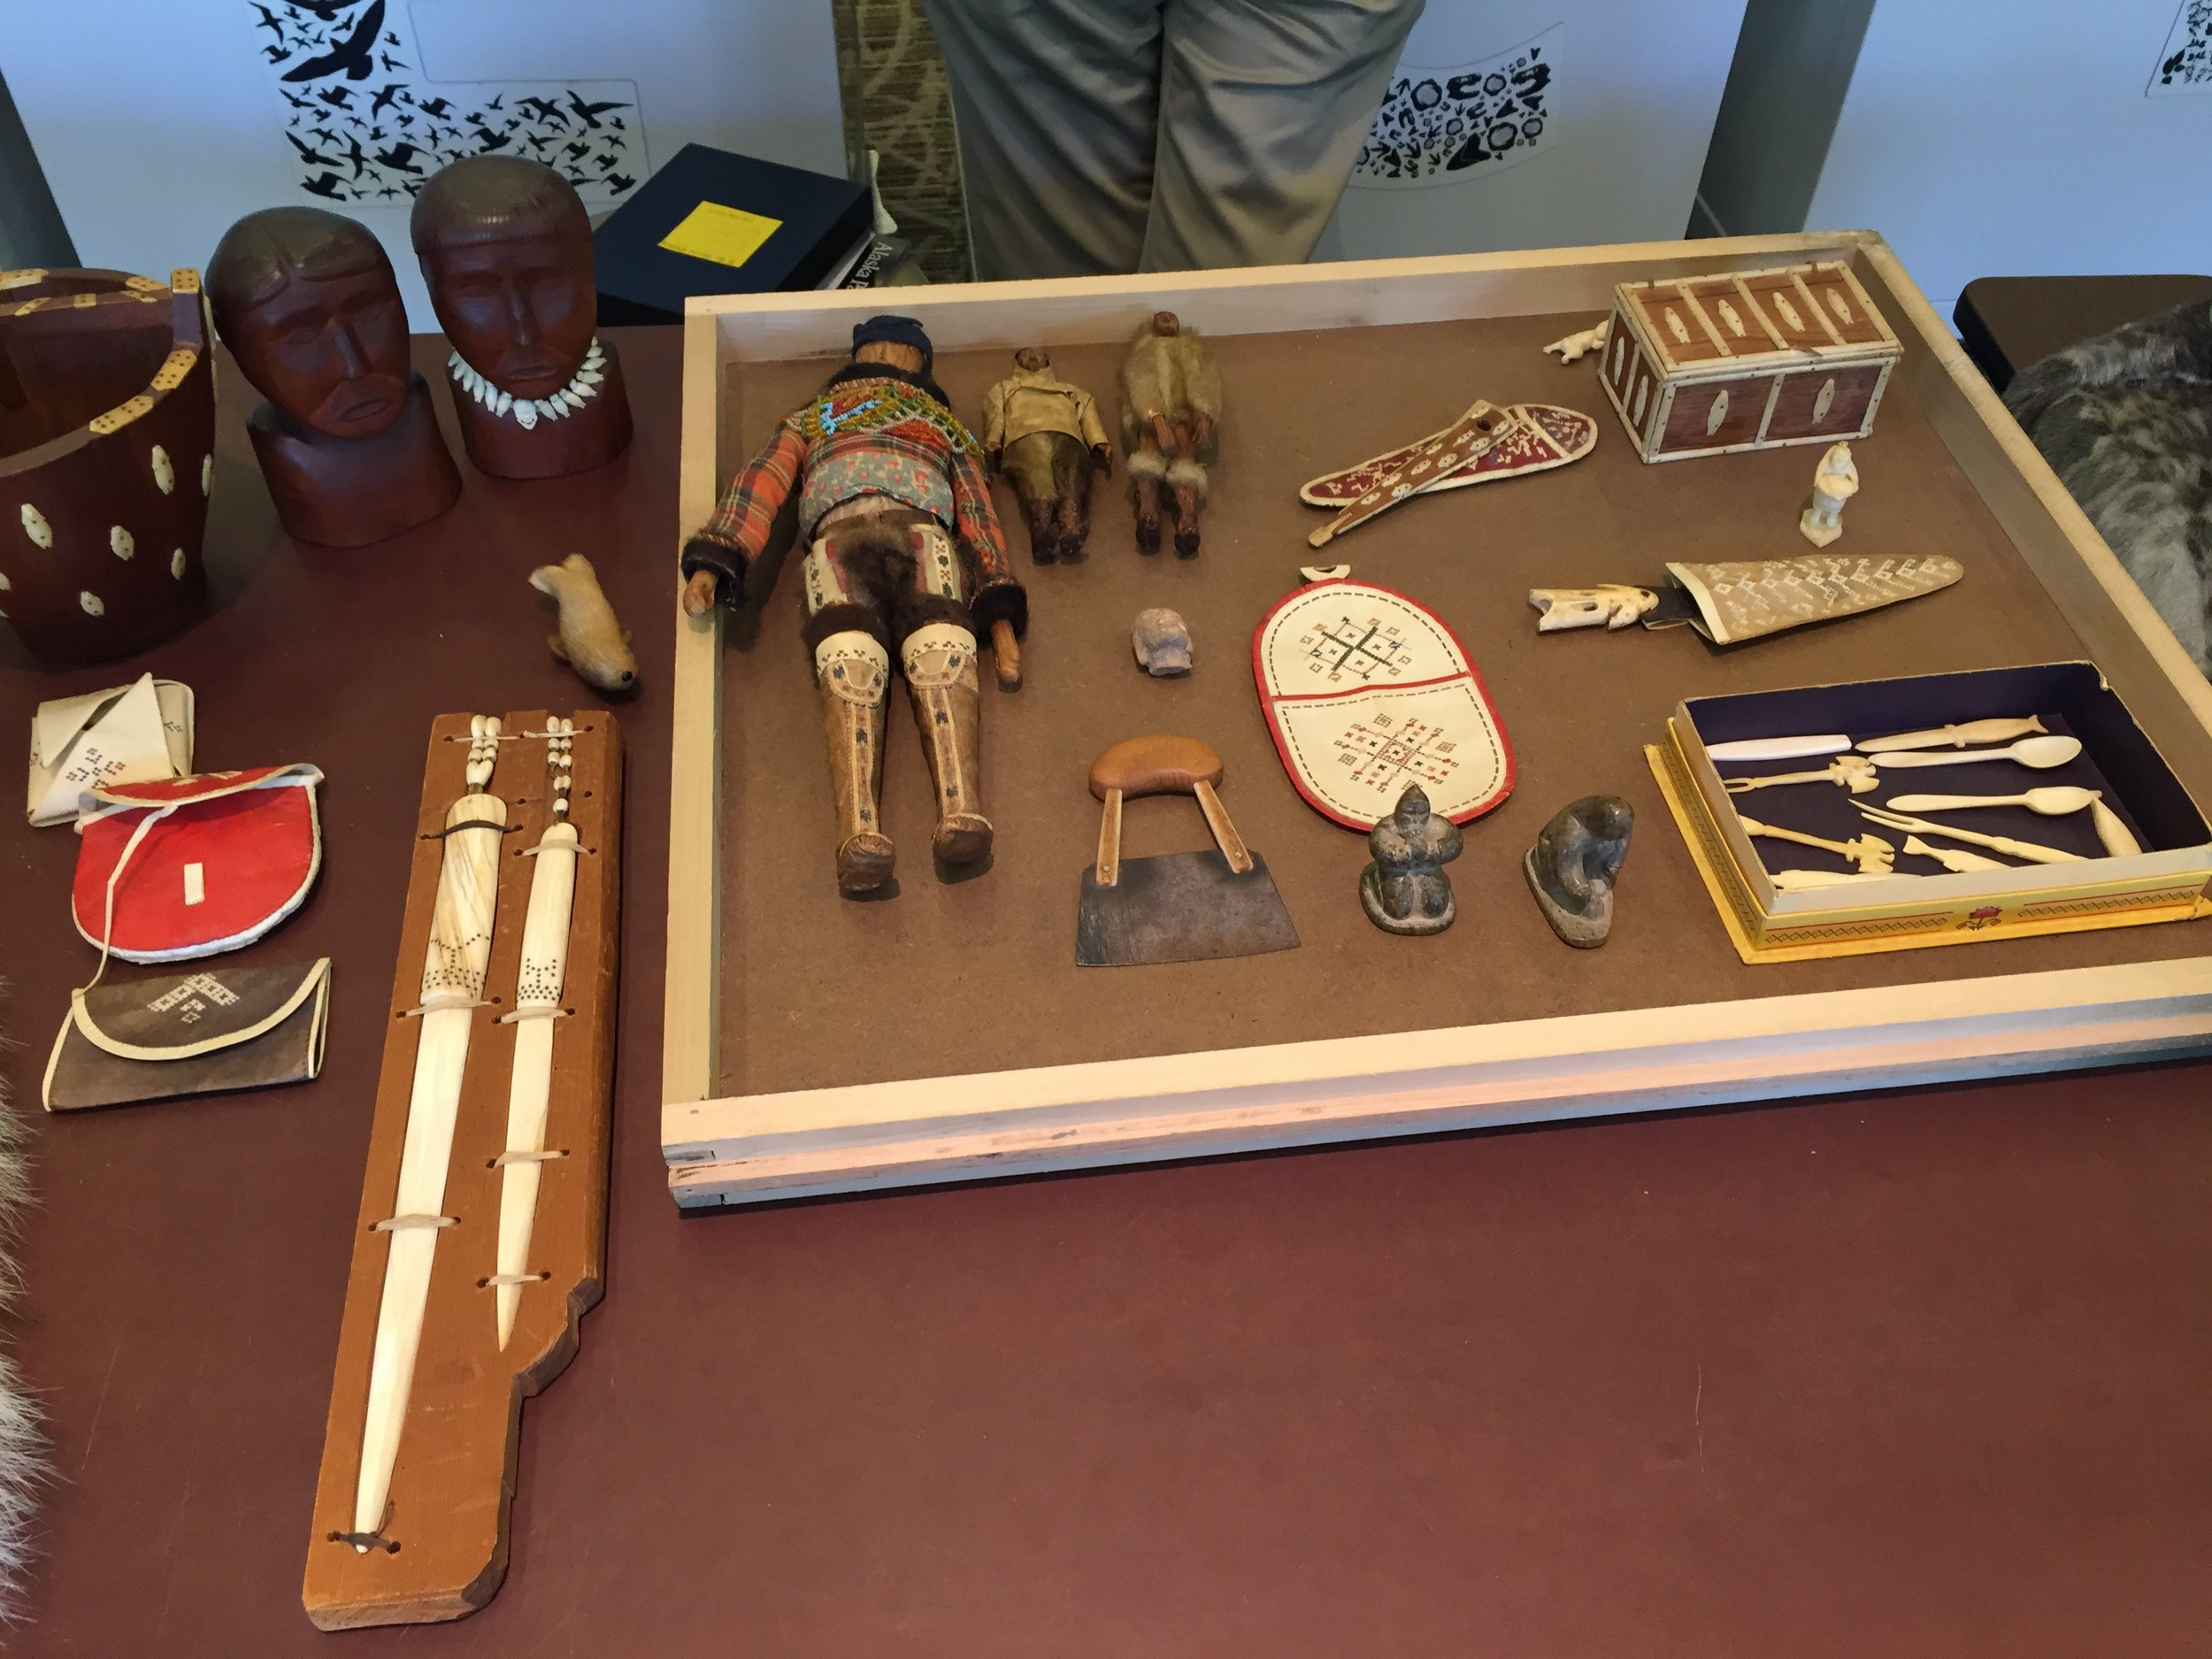 These objects on display in Q?rium are from East Greenland. They were collected by a U.S. Airman working in Greenland during World War II. They are crafted from narwhal tusks and were made by locals specifically for tourists and other visitors.